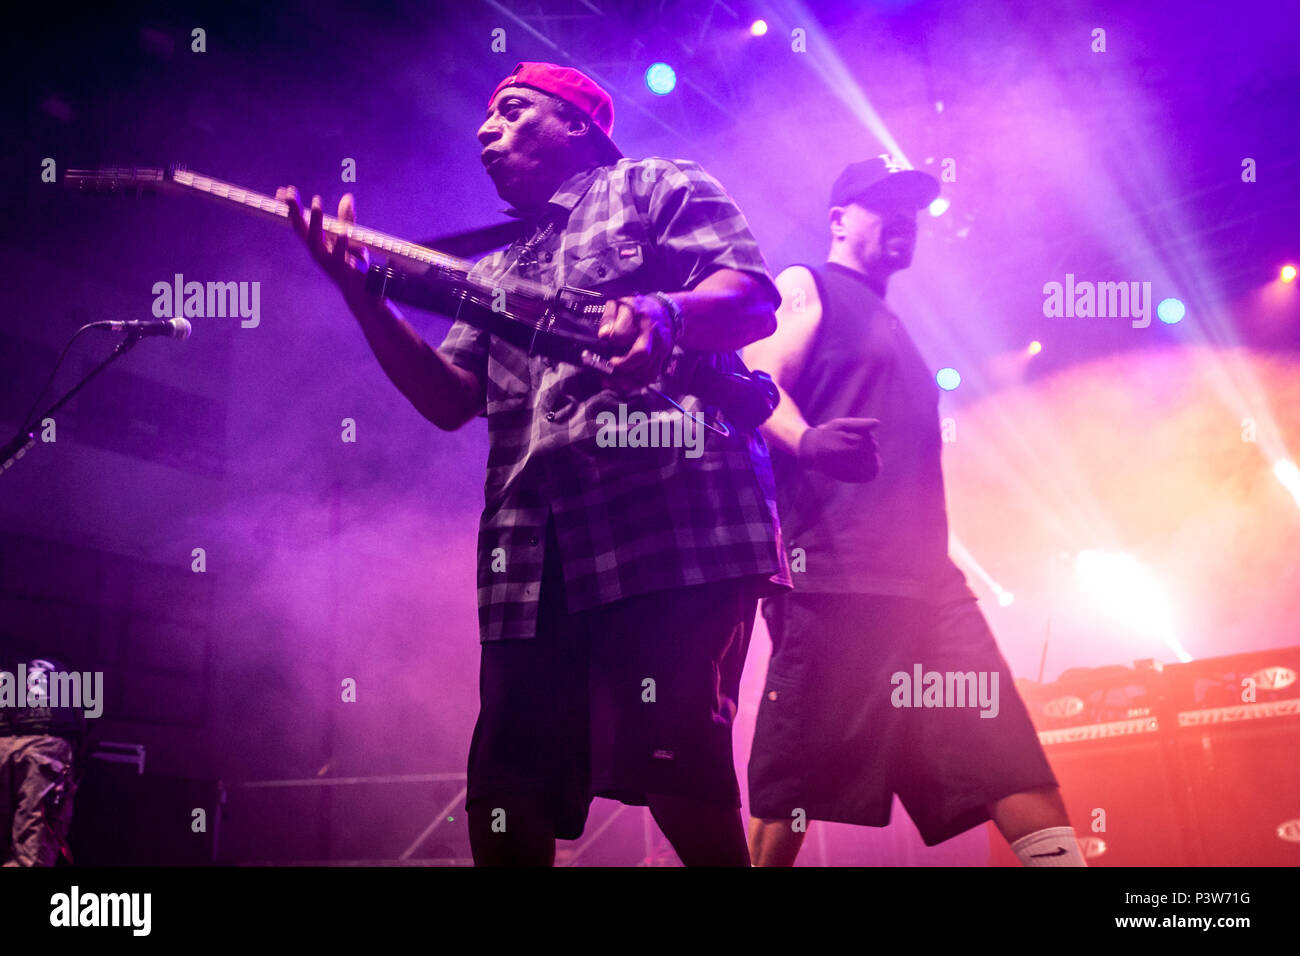 Zagreb, Croatia. 19th Jun, 2018. Body Count, the American heavy metal band, performs a live concert at in Zagreb. Here vocalist and rapper Ice-T is pictured live on stage. Credit: Deyan Baric/Alamy Live News - Stock Image